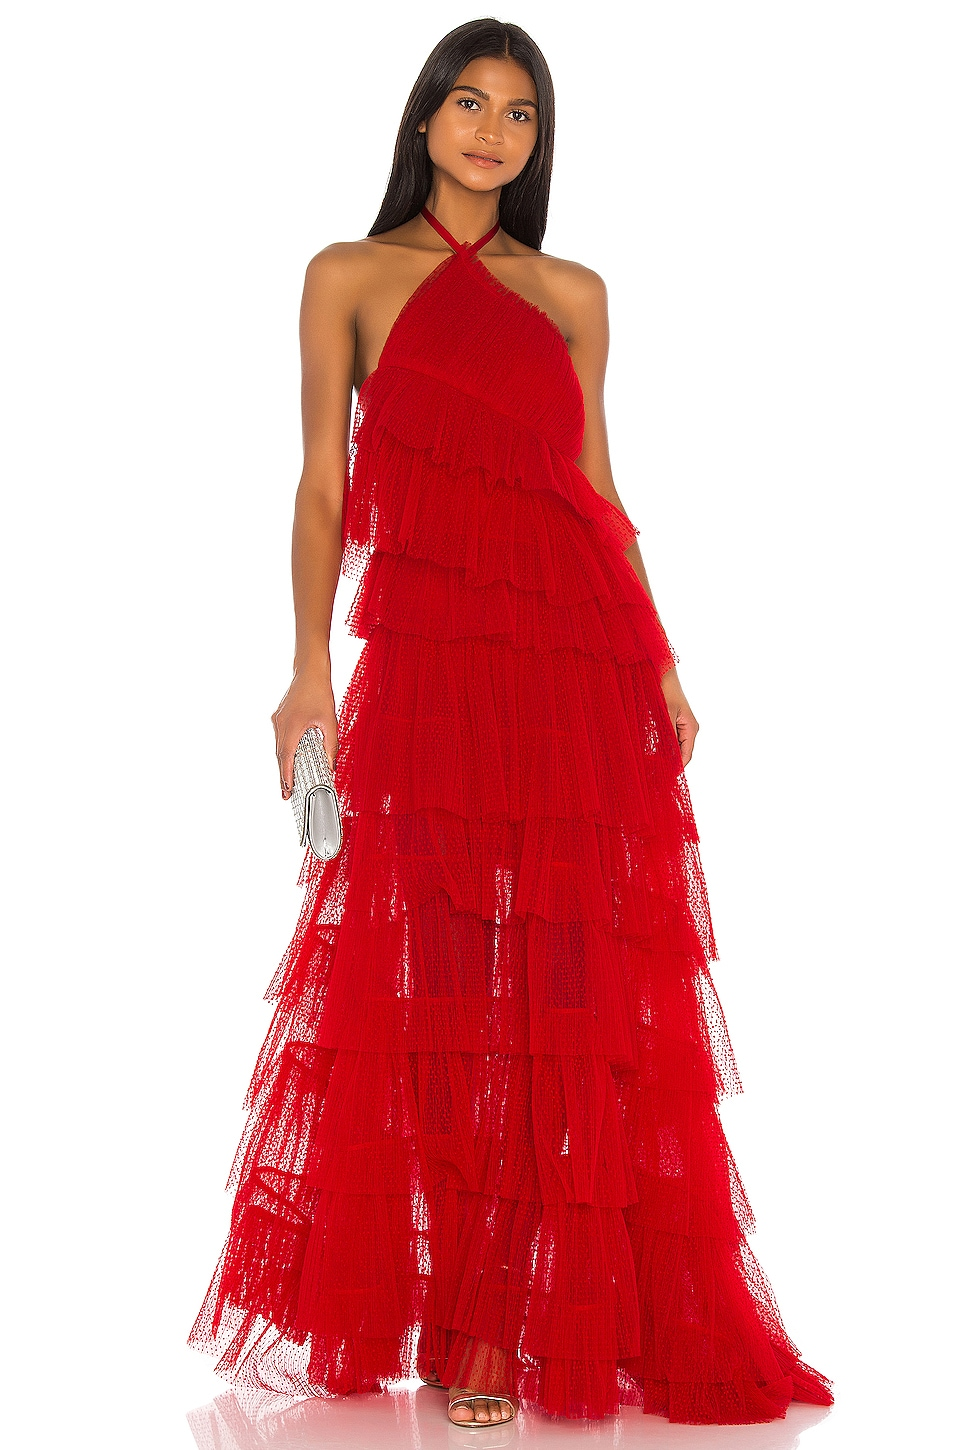 Alexis Justinia Dress in Cherry